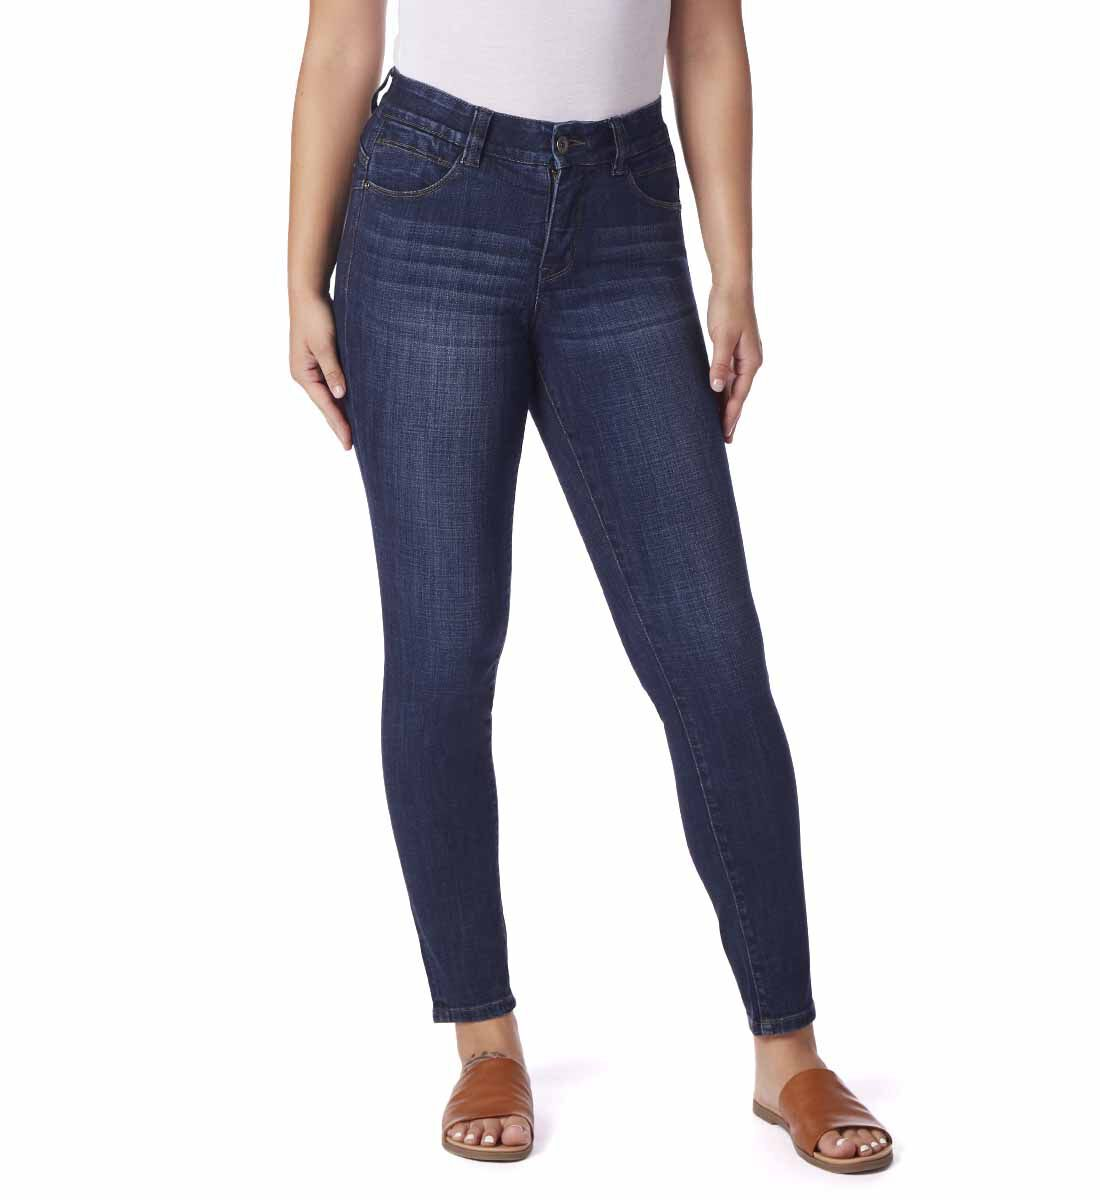 also women   clothing in plus sizes jag jeans rh jagjeans